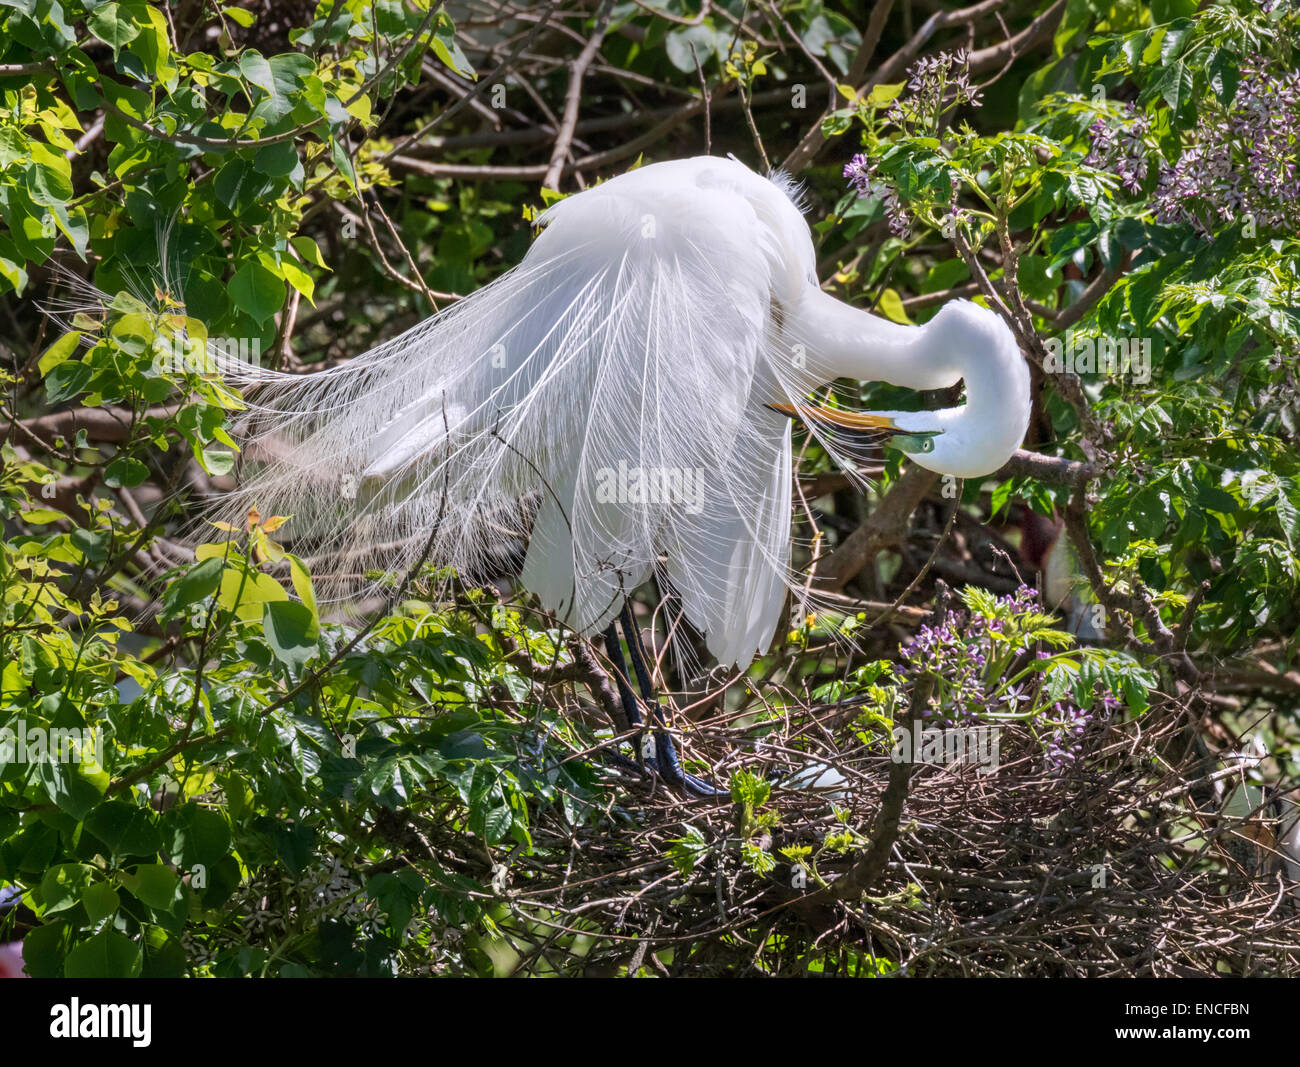 Great egret (Ardea alba) in breeding plumage preening near the nest, High Island, Texas, USA. - Stock Image